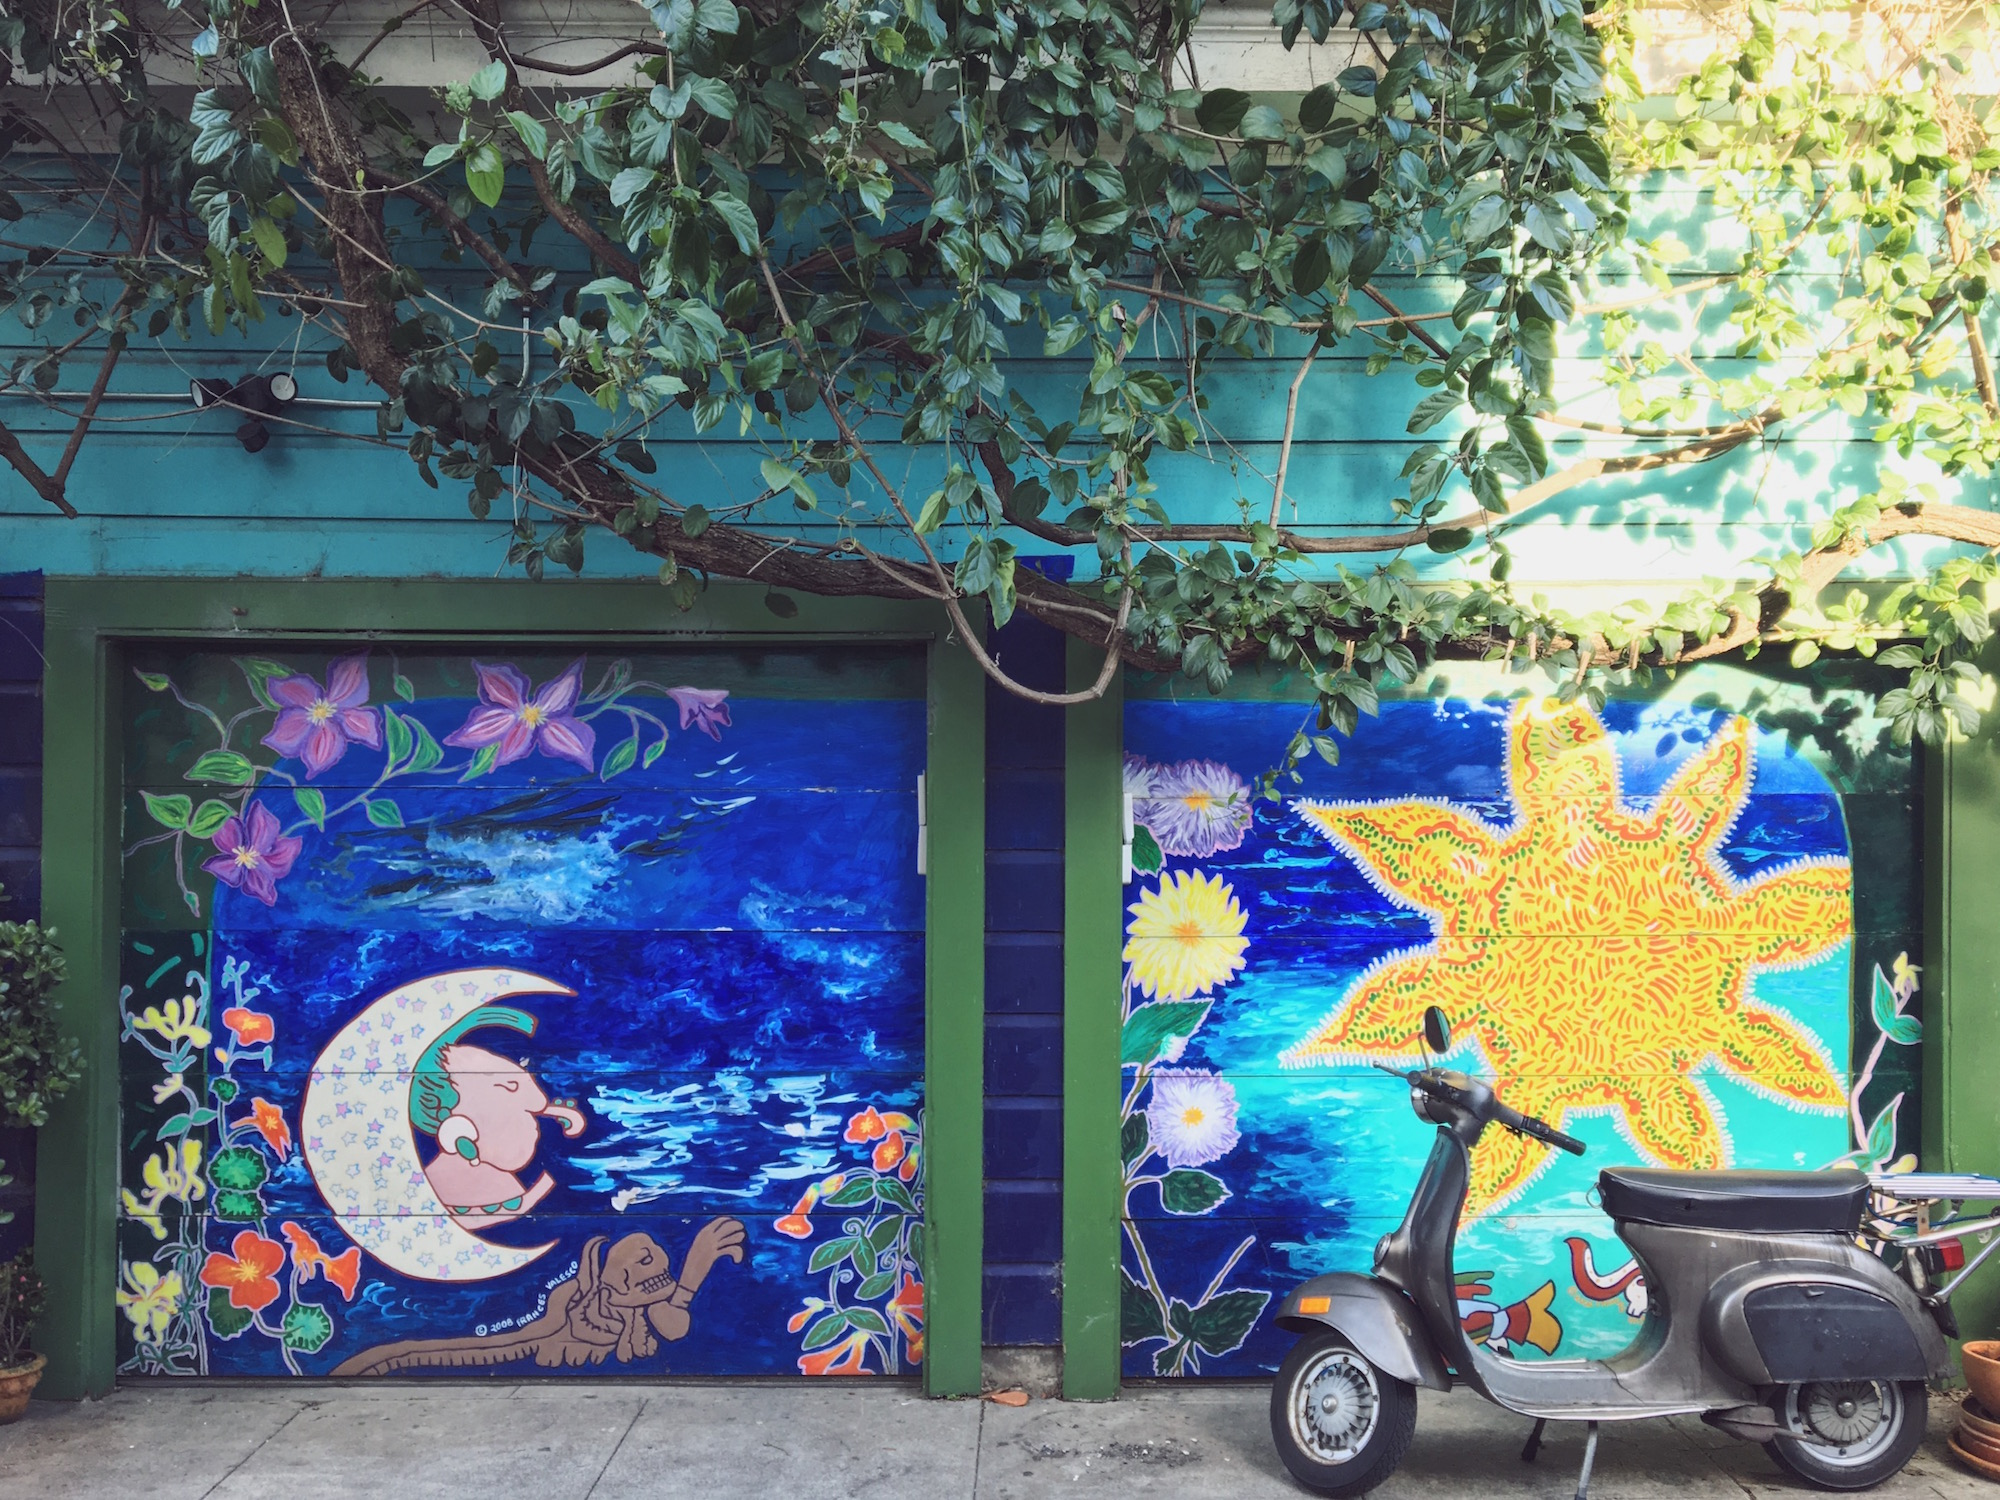 Balmy Alley - Murales nel quartiere Mission di San Francisco - The Moon and the Sun (2008) - Frances Valesco